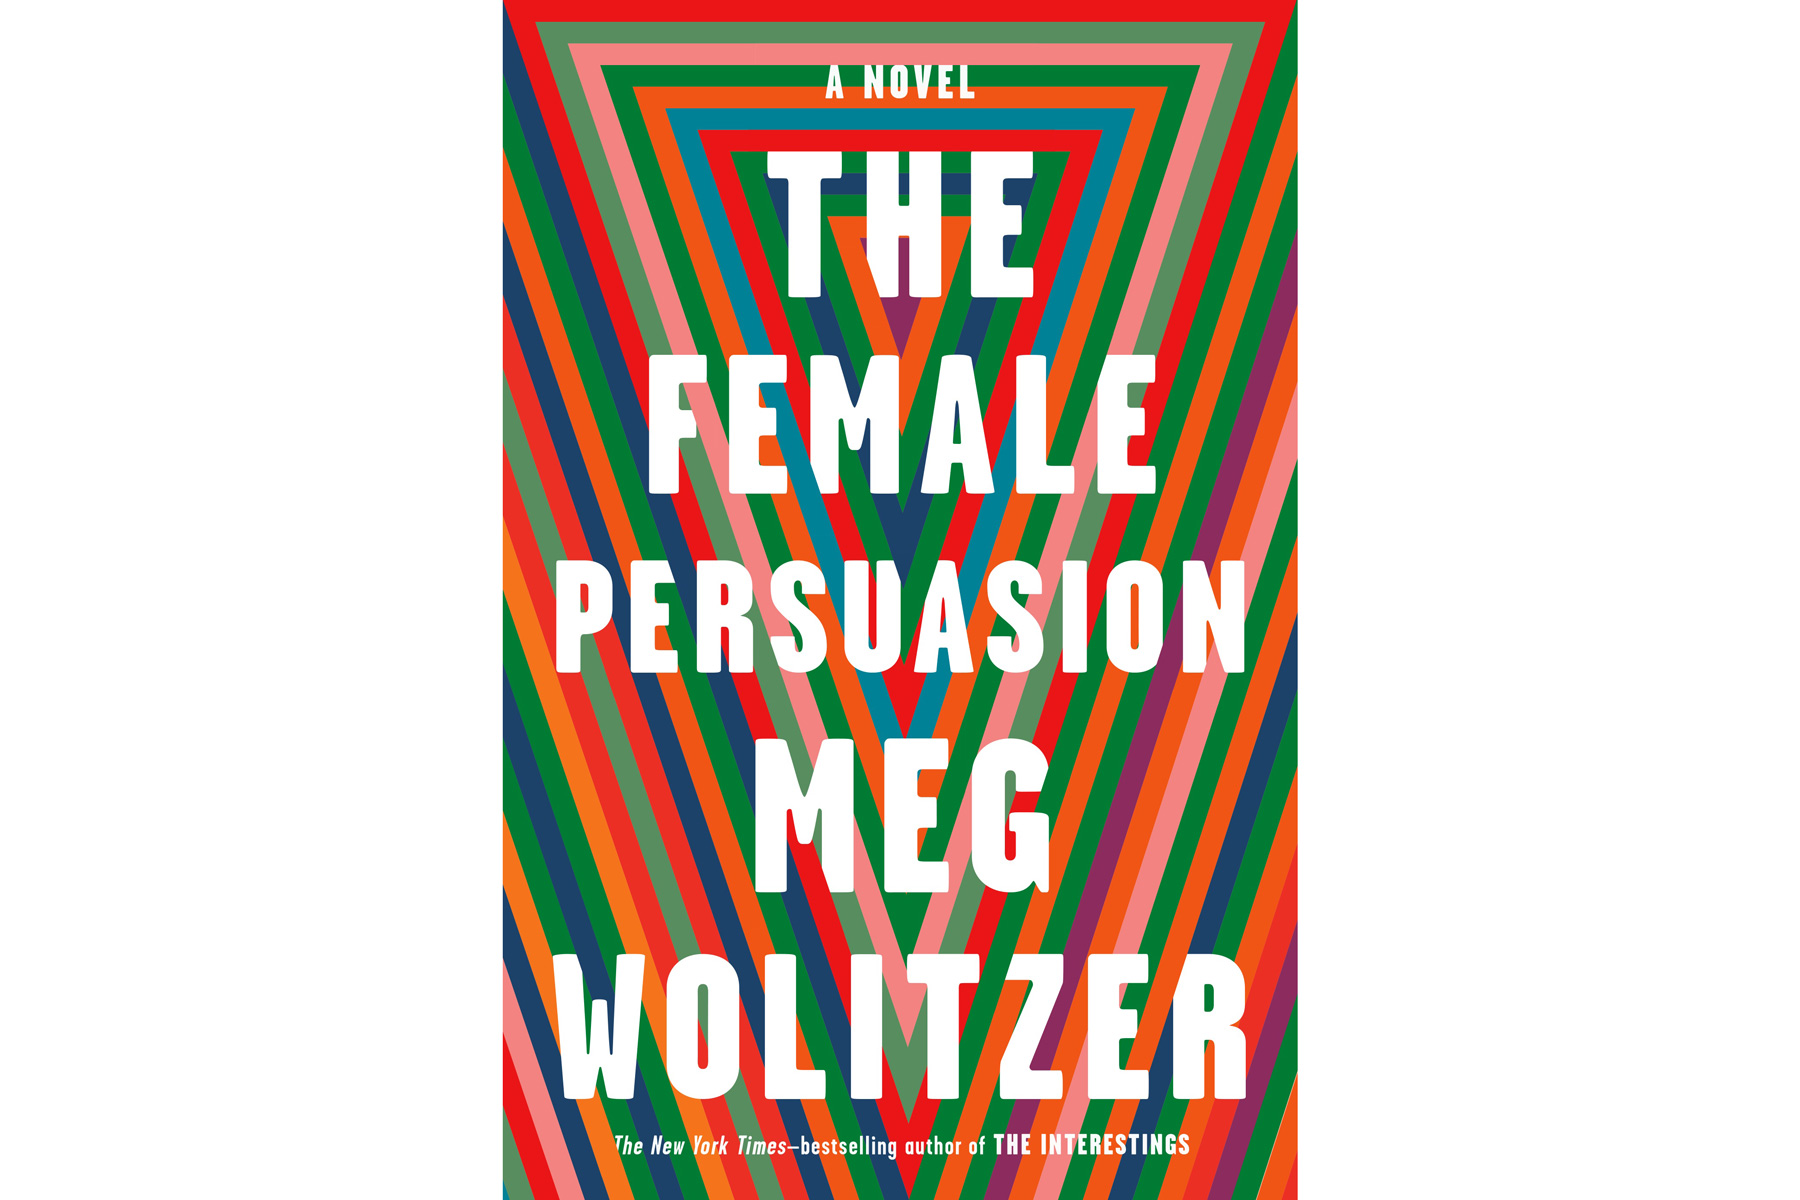 The Female Persuasion, by Meg Wolitzer